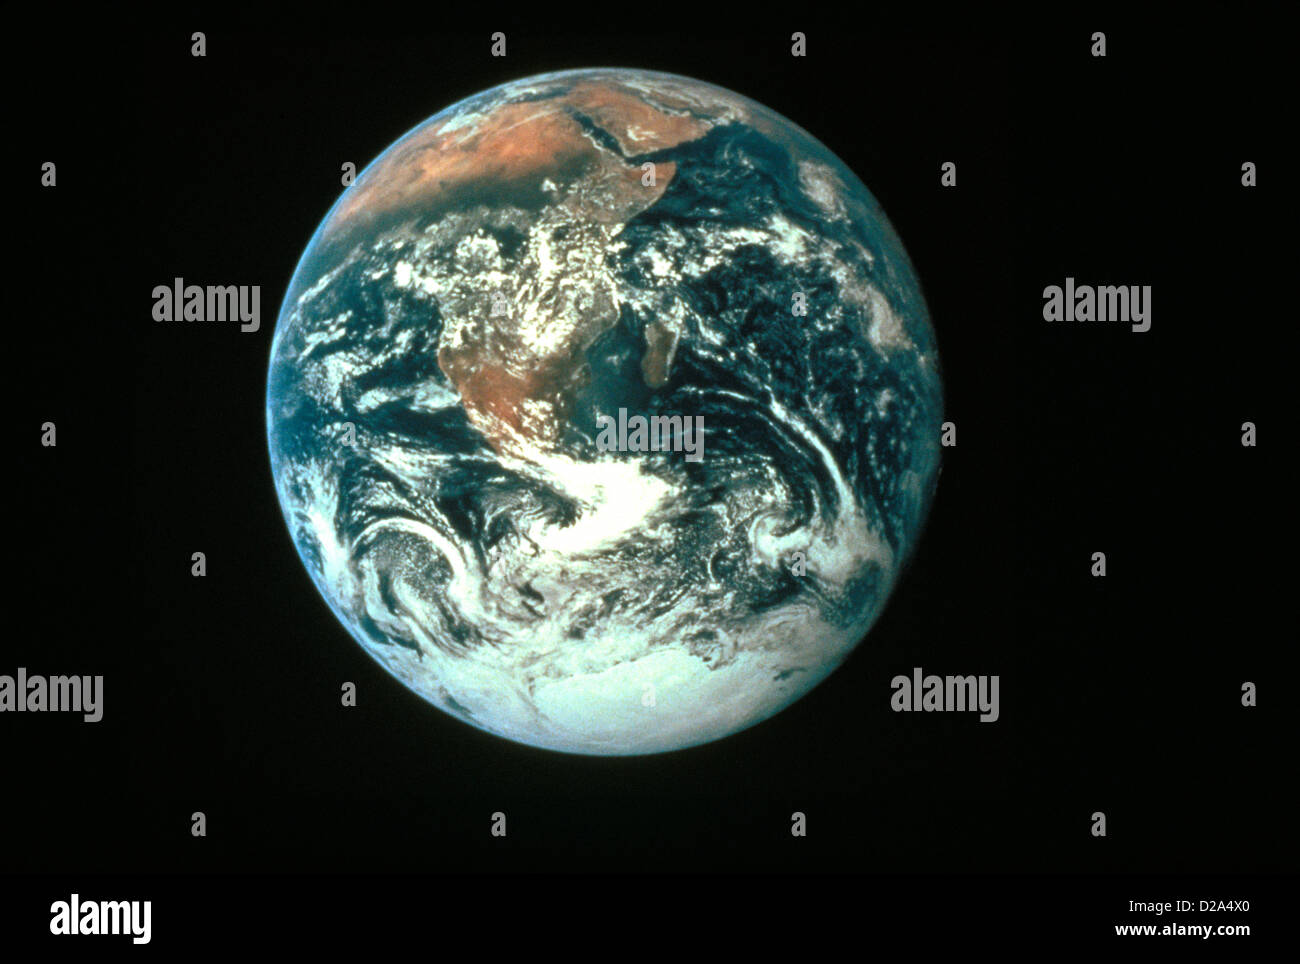 Planet Earth Seen From Space; Africa And Antarctica Visible - Stock Image